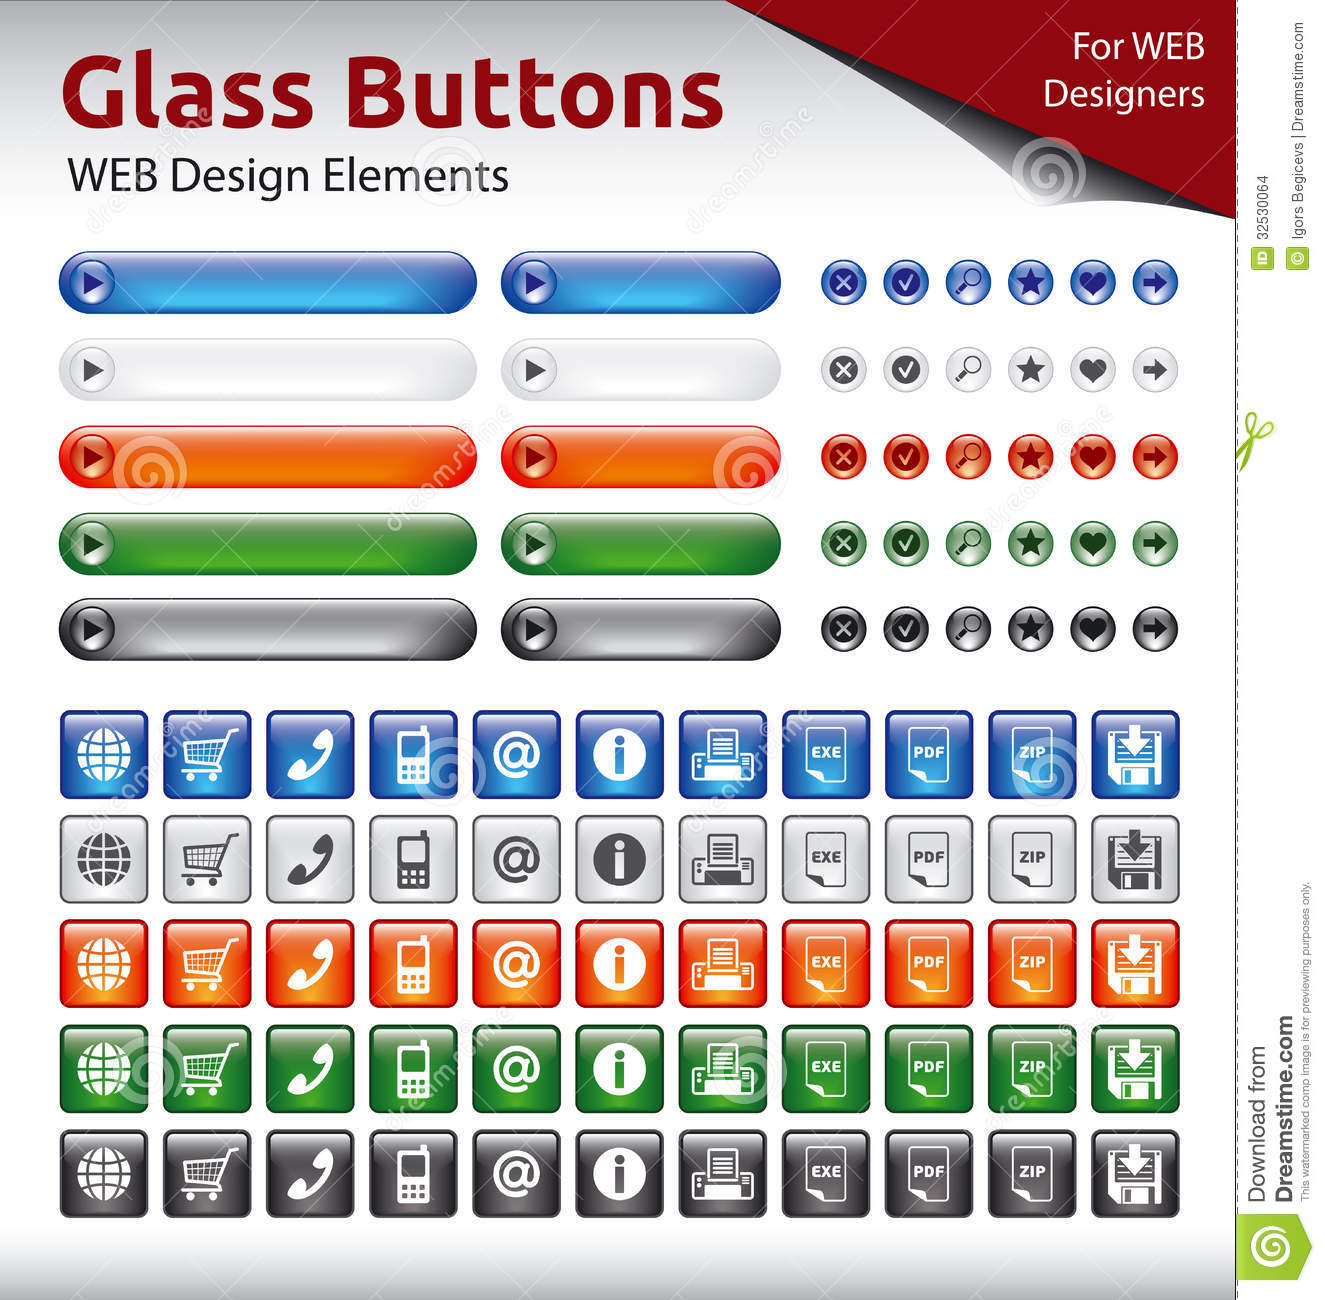 Glass Buttons - WEB Design Elements Stock Images - Image: 32530064